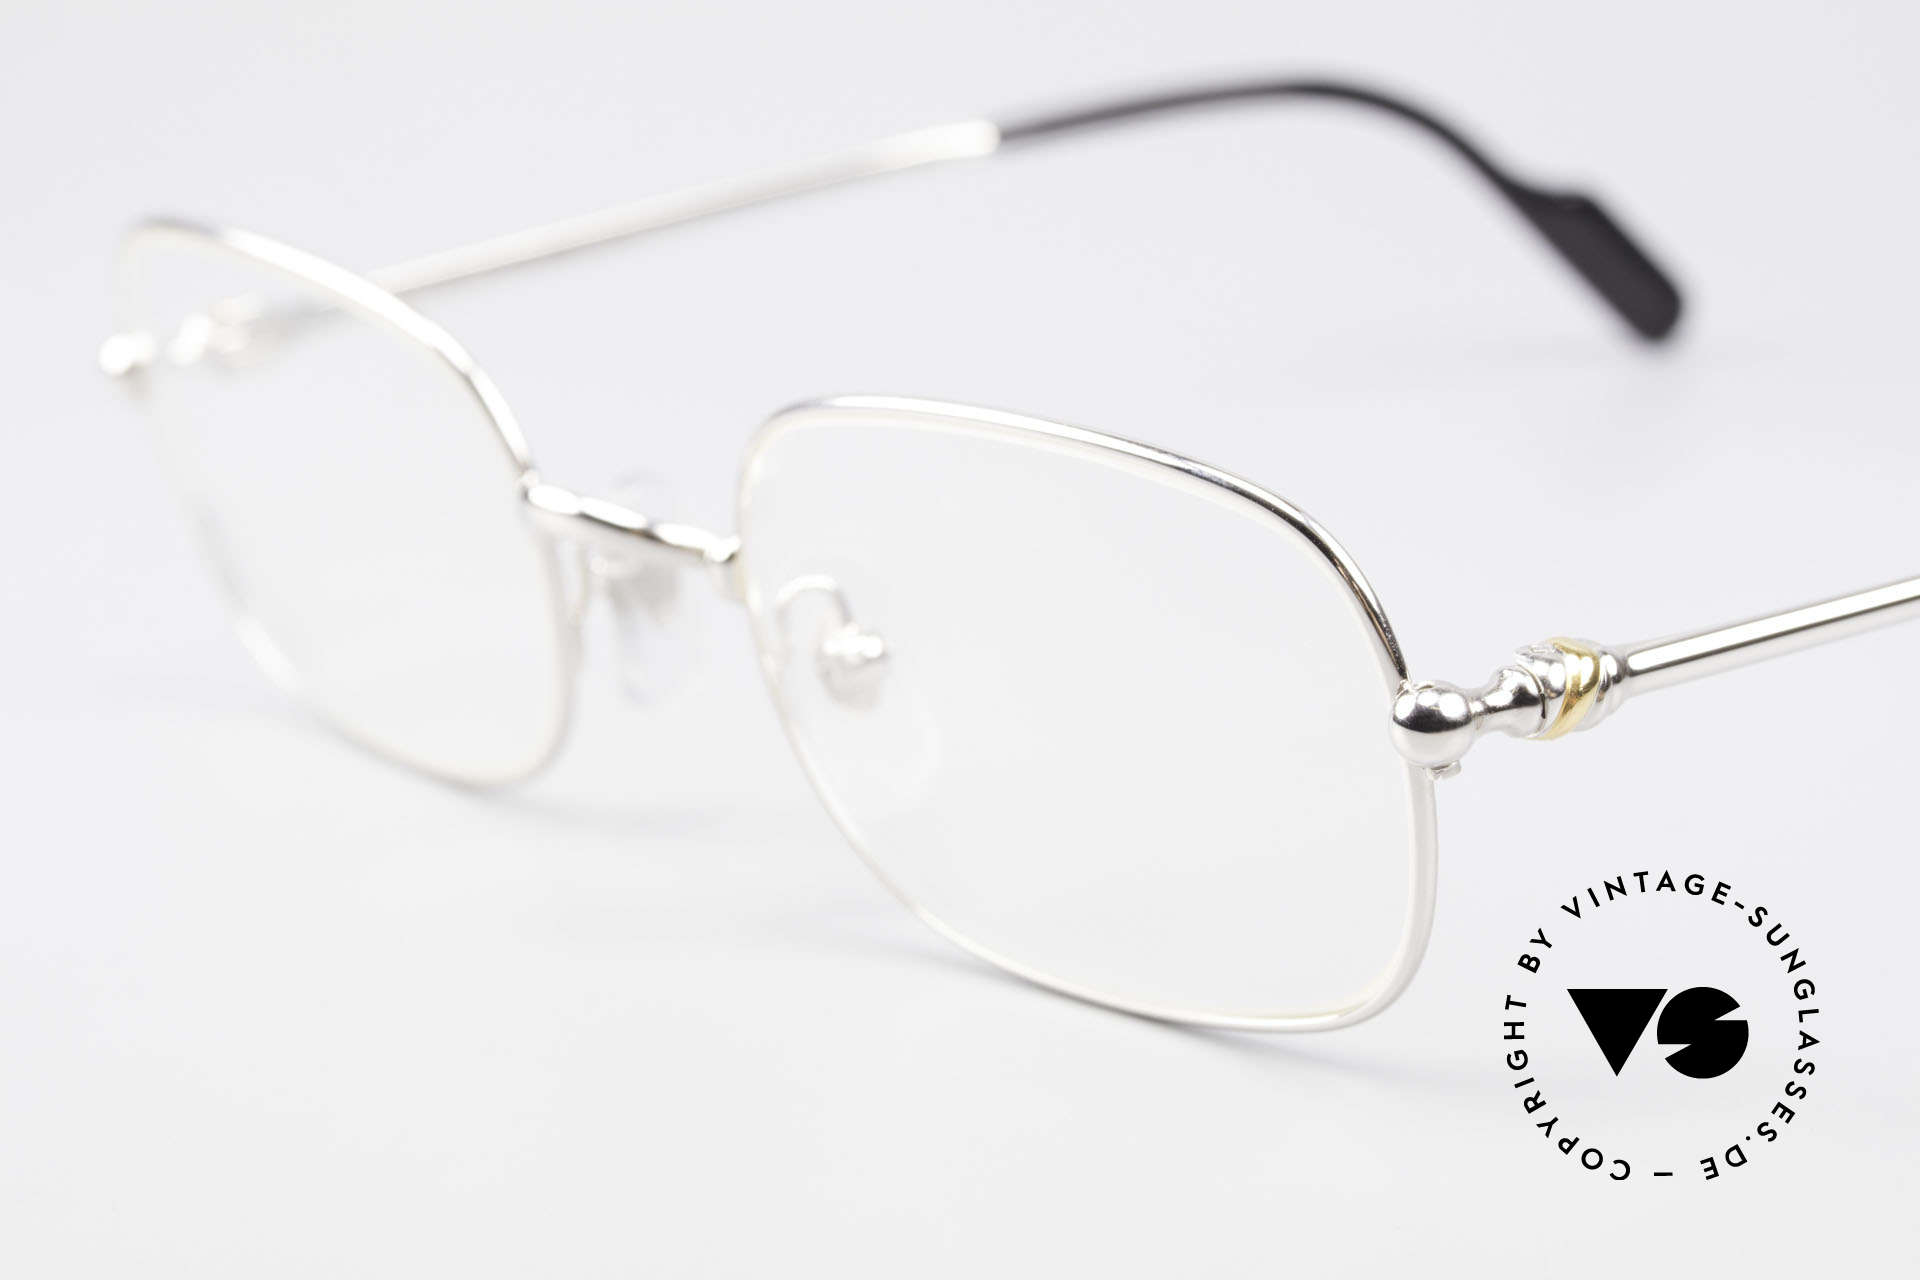 Cartier Deimios Square Frame Luxury Platinum, unworn luxury frame with original box and booklets, Made for Men and Women